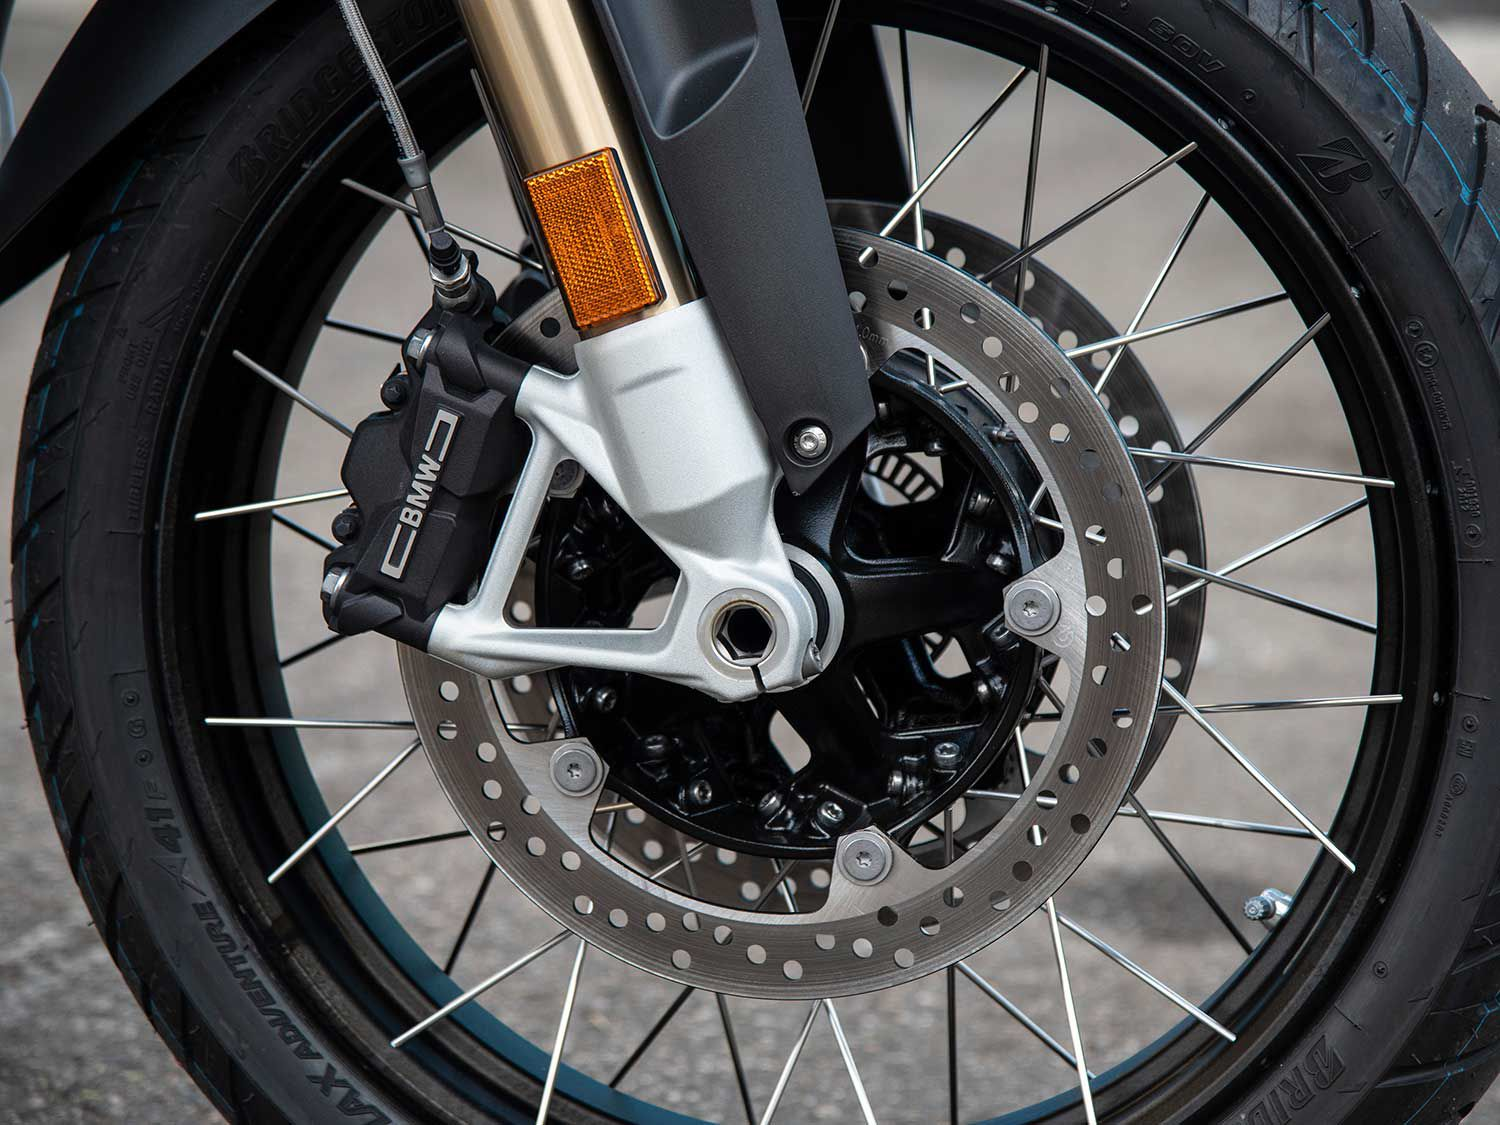 ABS on the radially mounted 4-piston brakes are easily defeatable, enabling quick dirt capability— or tail slides on tarmac.